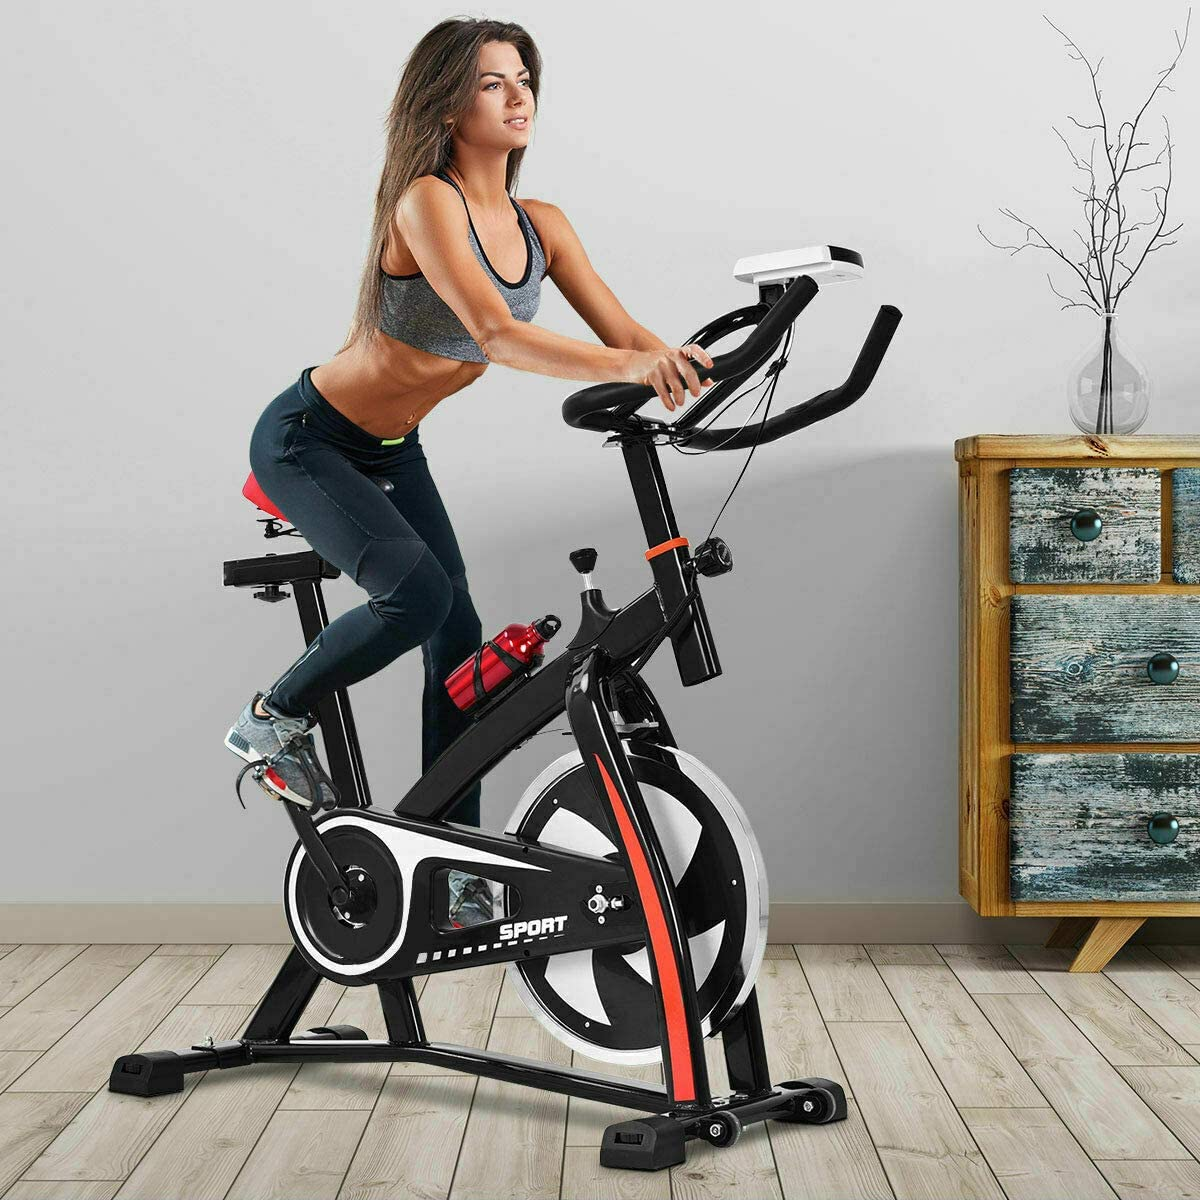 Mesh Fitness Workout Weight Lifting Gym Exercise Training Bicycle Bike 6001-WP